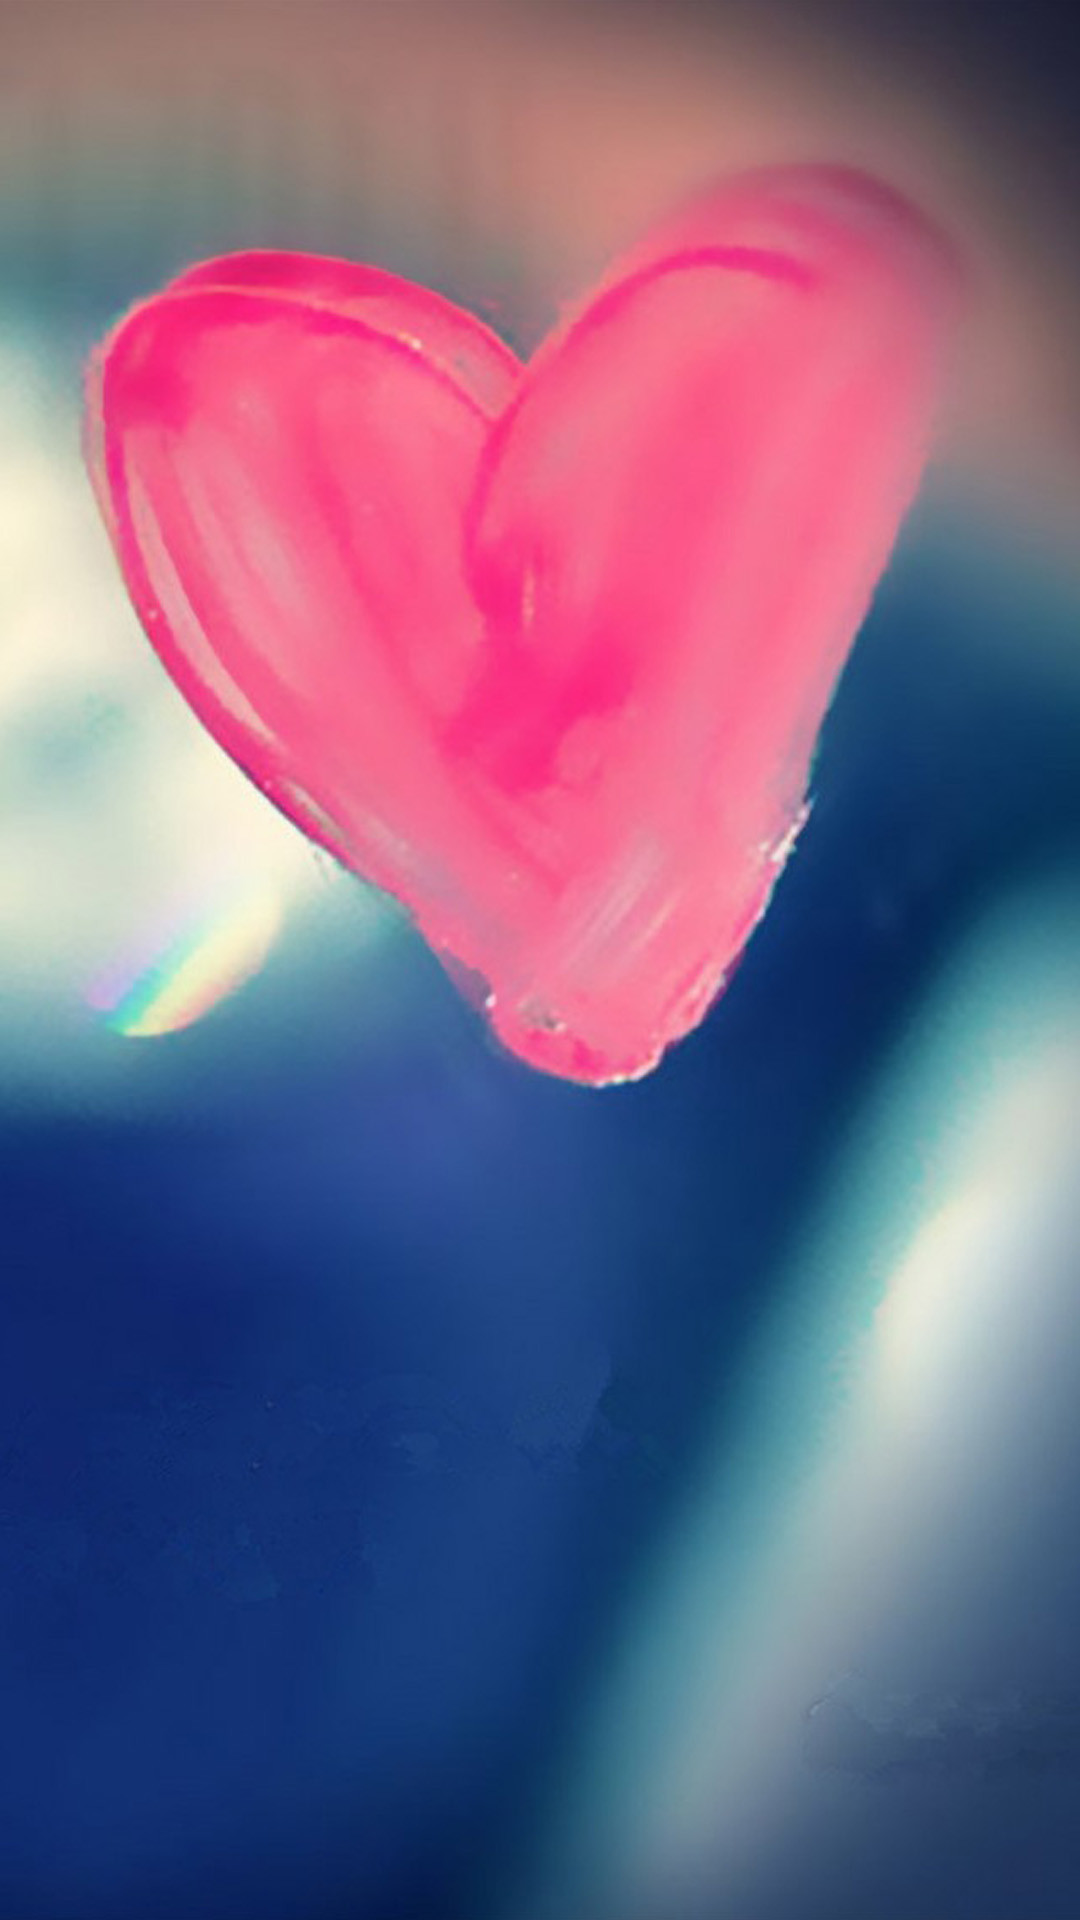 Pure Pink Love Heart Drawn On Glass Window iPhone 8 wallpaper